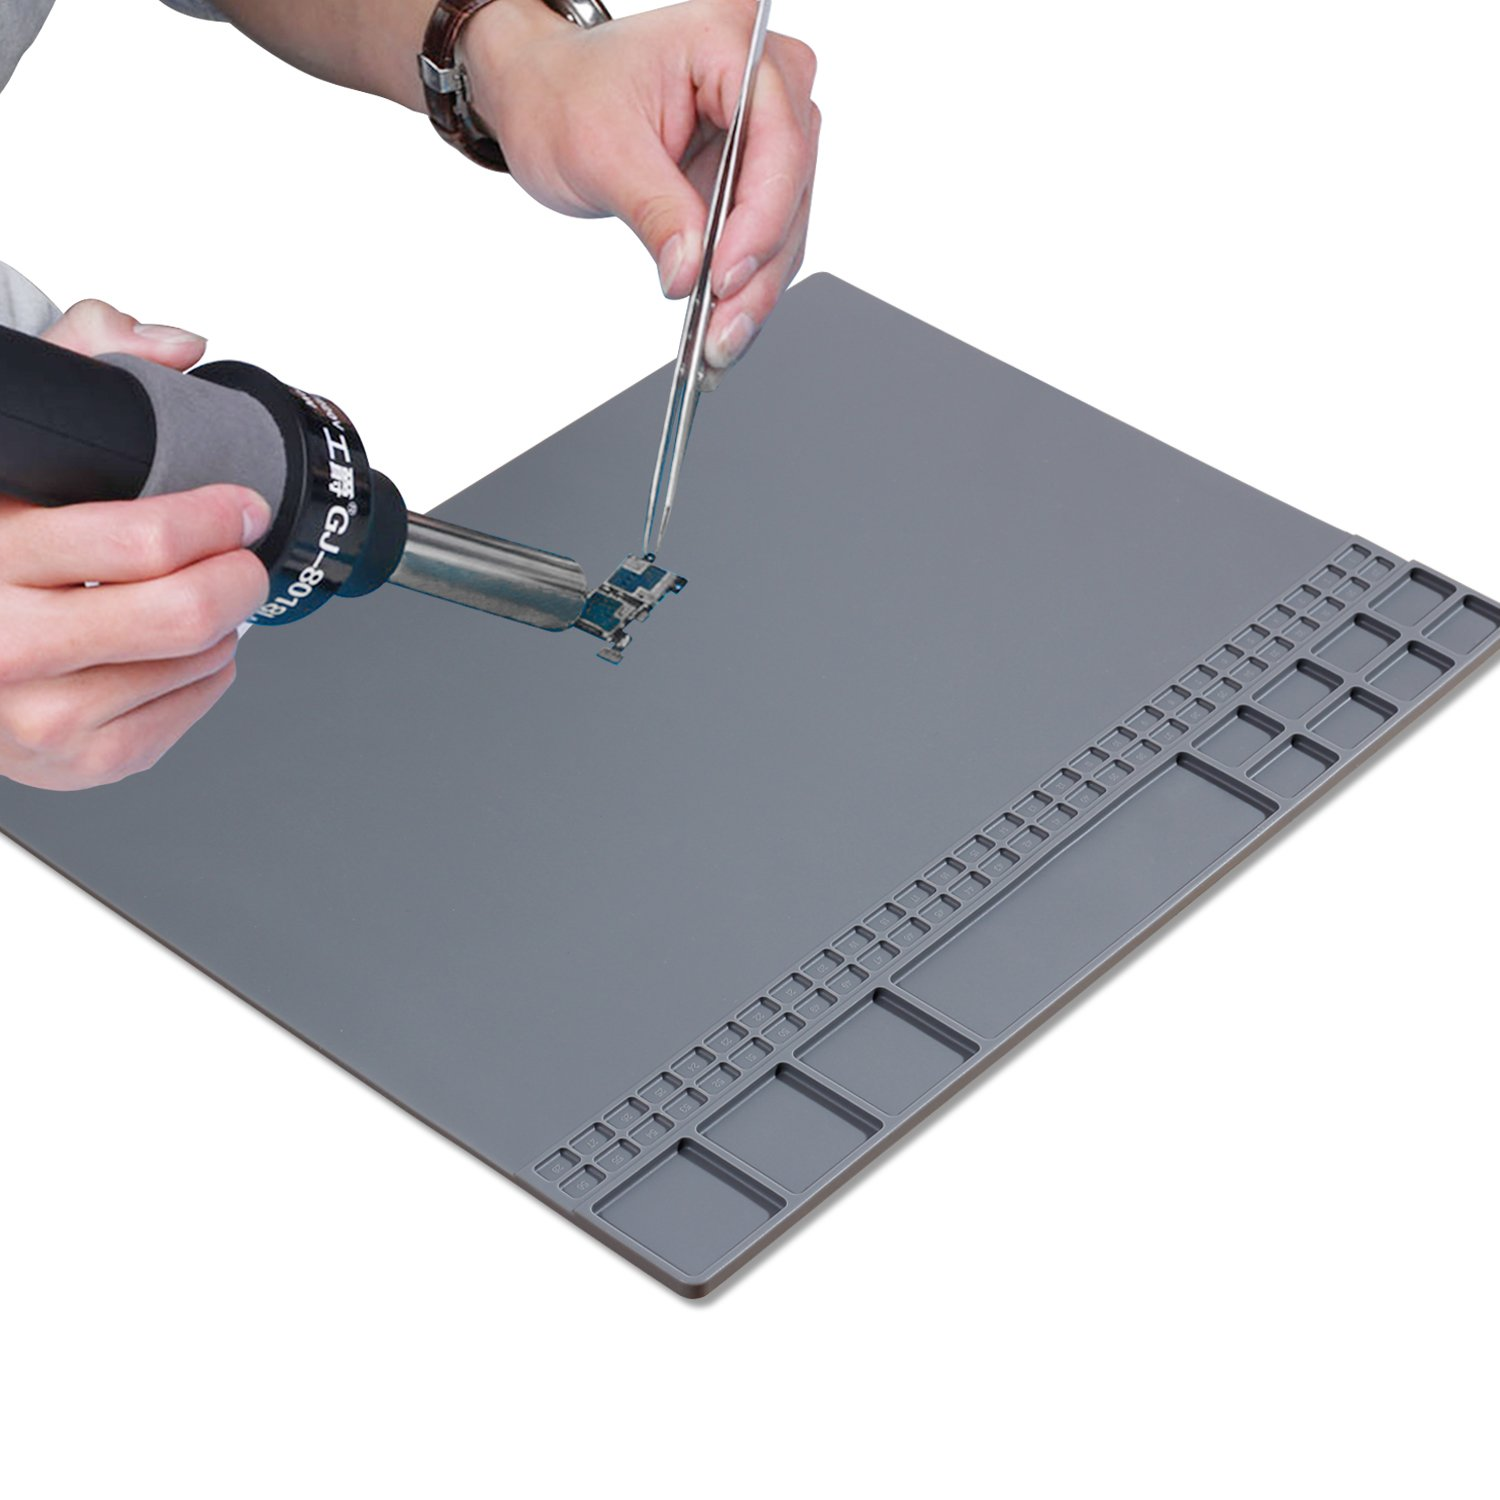 Large Magnetic Soldering Mat 932°F Heat Resistant Silicone Solder Pad for Soldering Station Heat Gun,Cellphone, Laptop Repair, Portable Workbench Mat with Size 15.9'' x 12'' by BEEVIVO (Image #1)